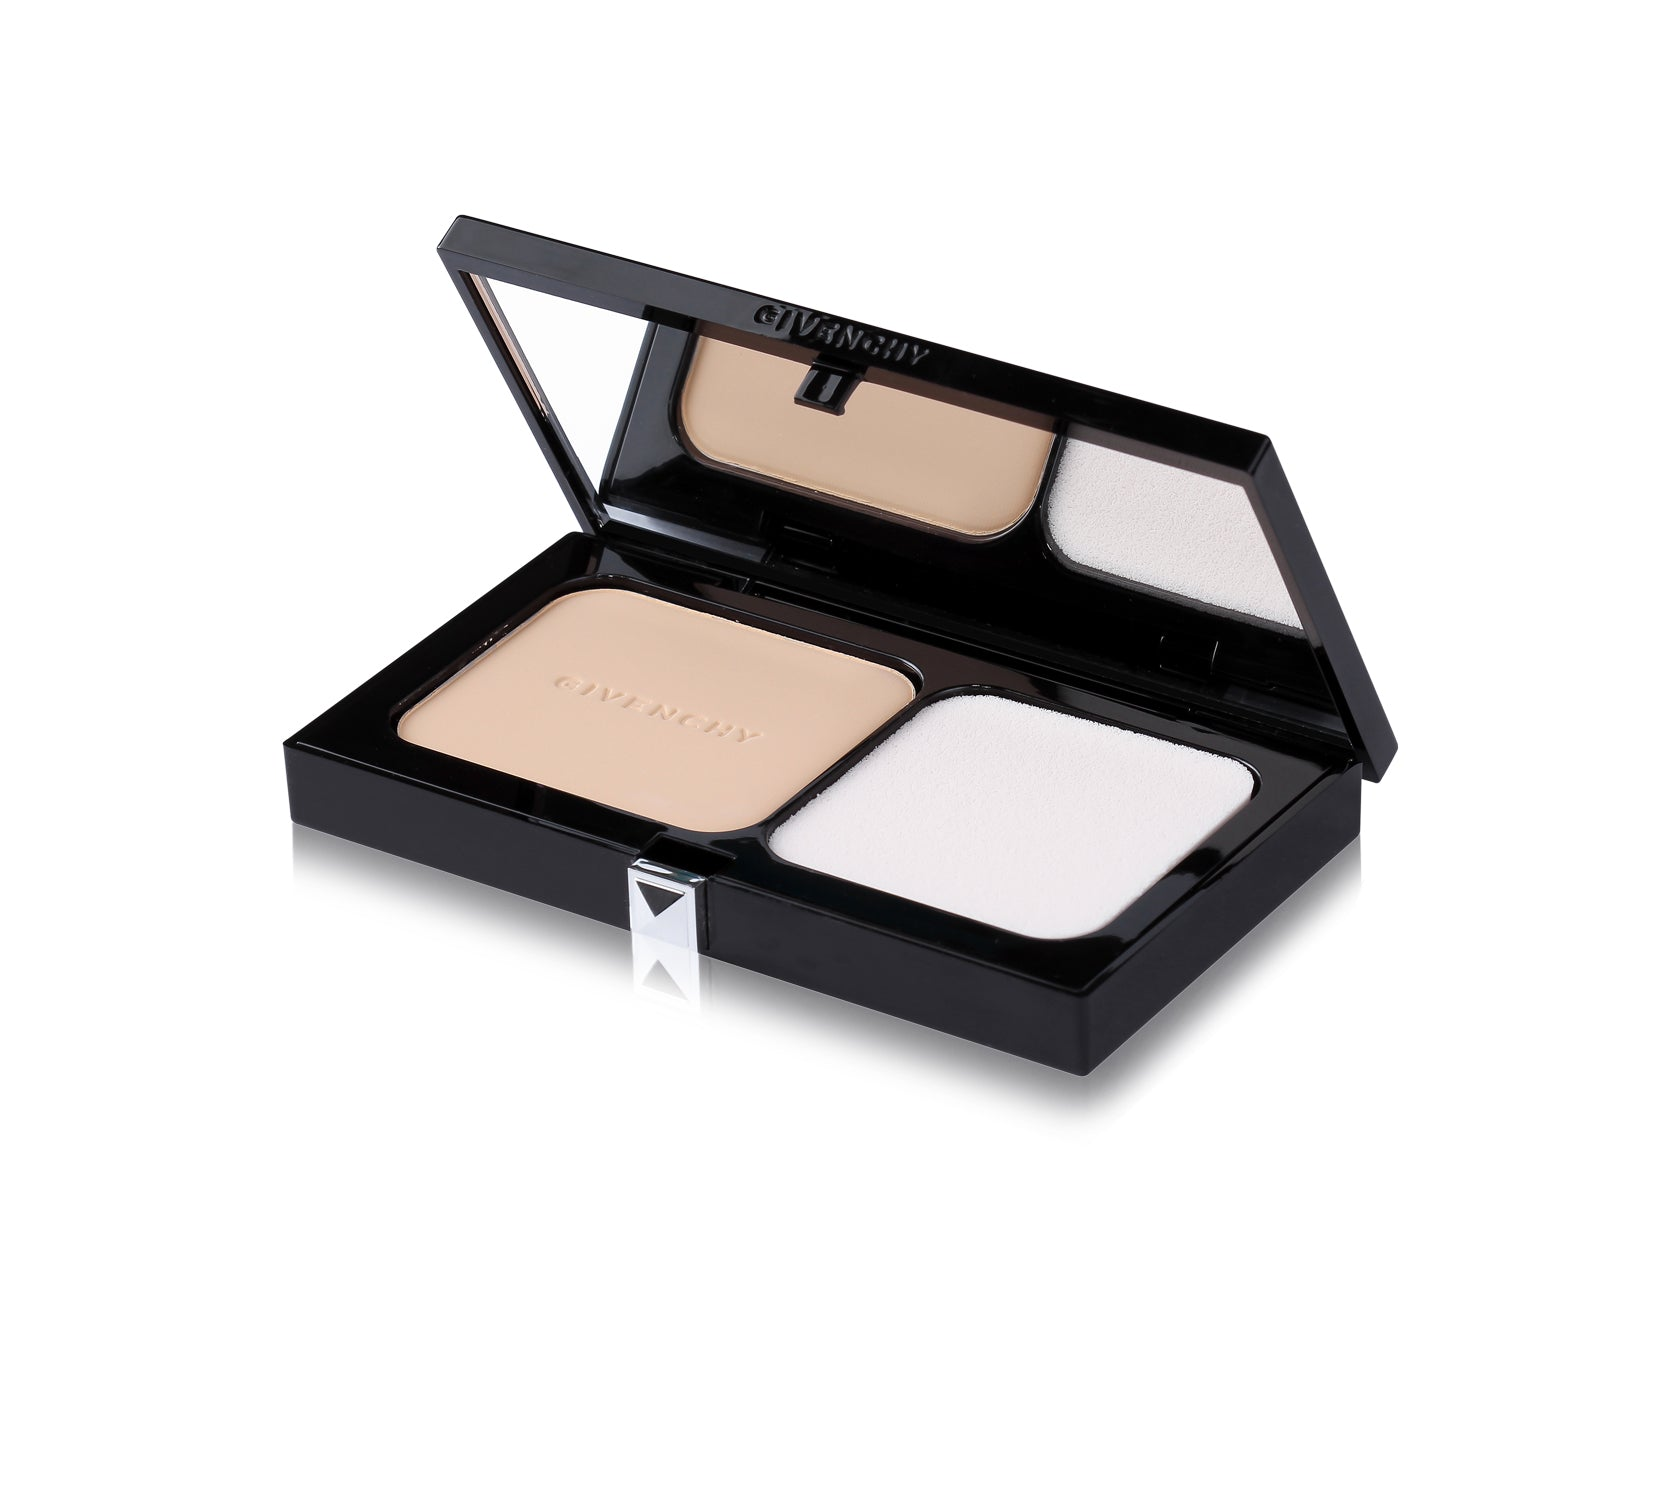 matissime-velvet-radiant-mat-powder-foundation-absolute-matte-finish-spf20-pa